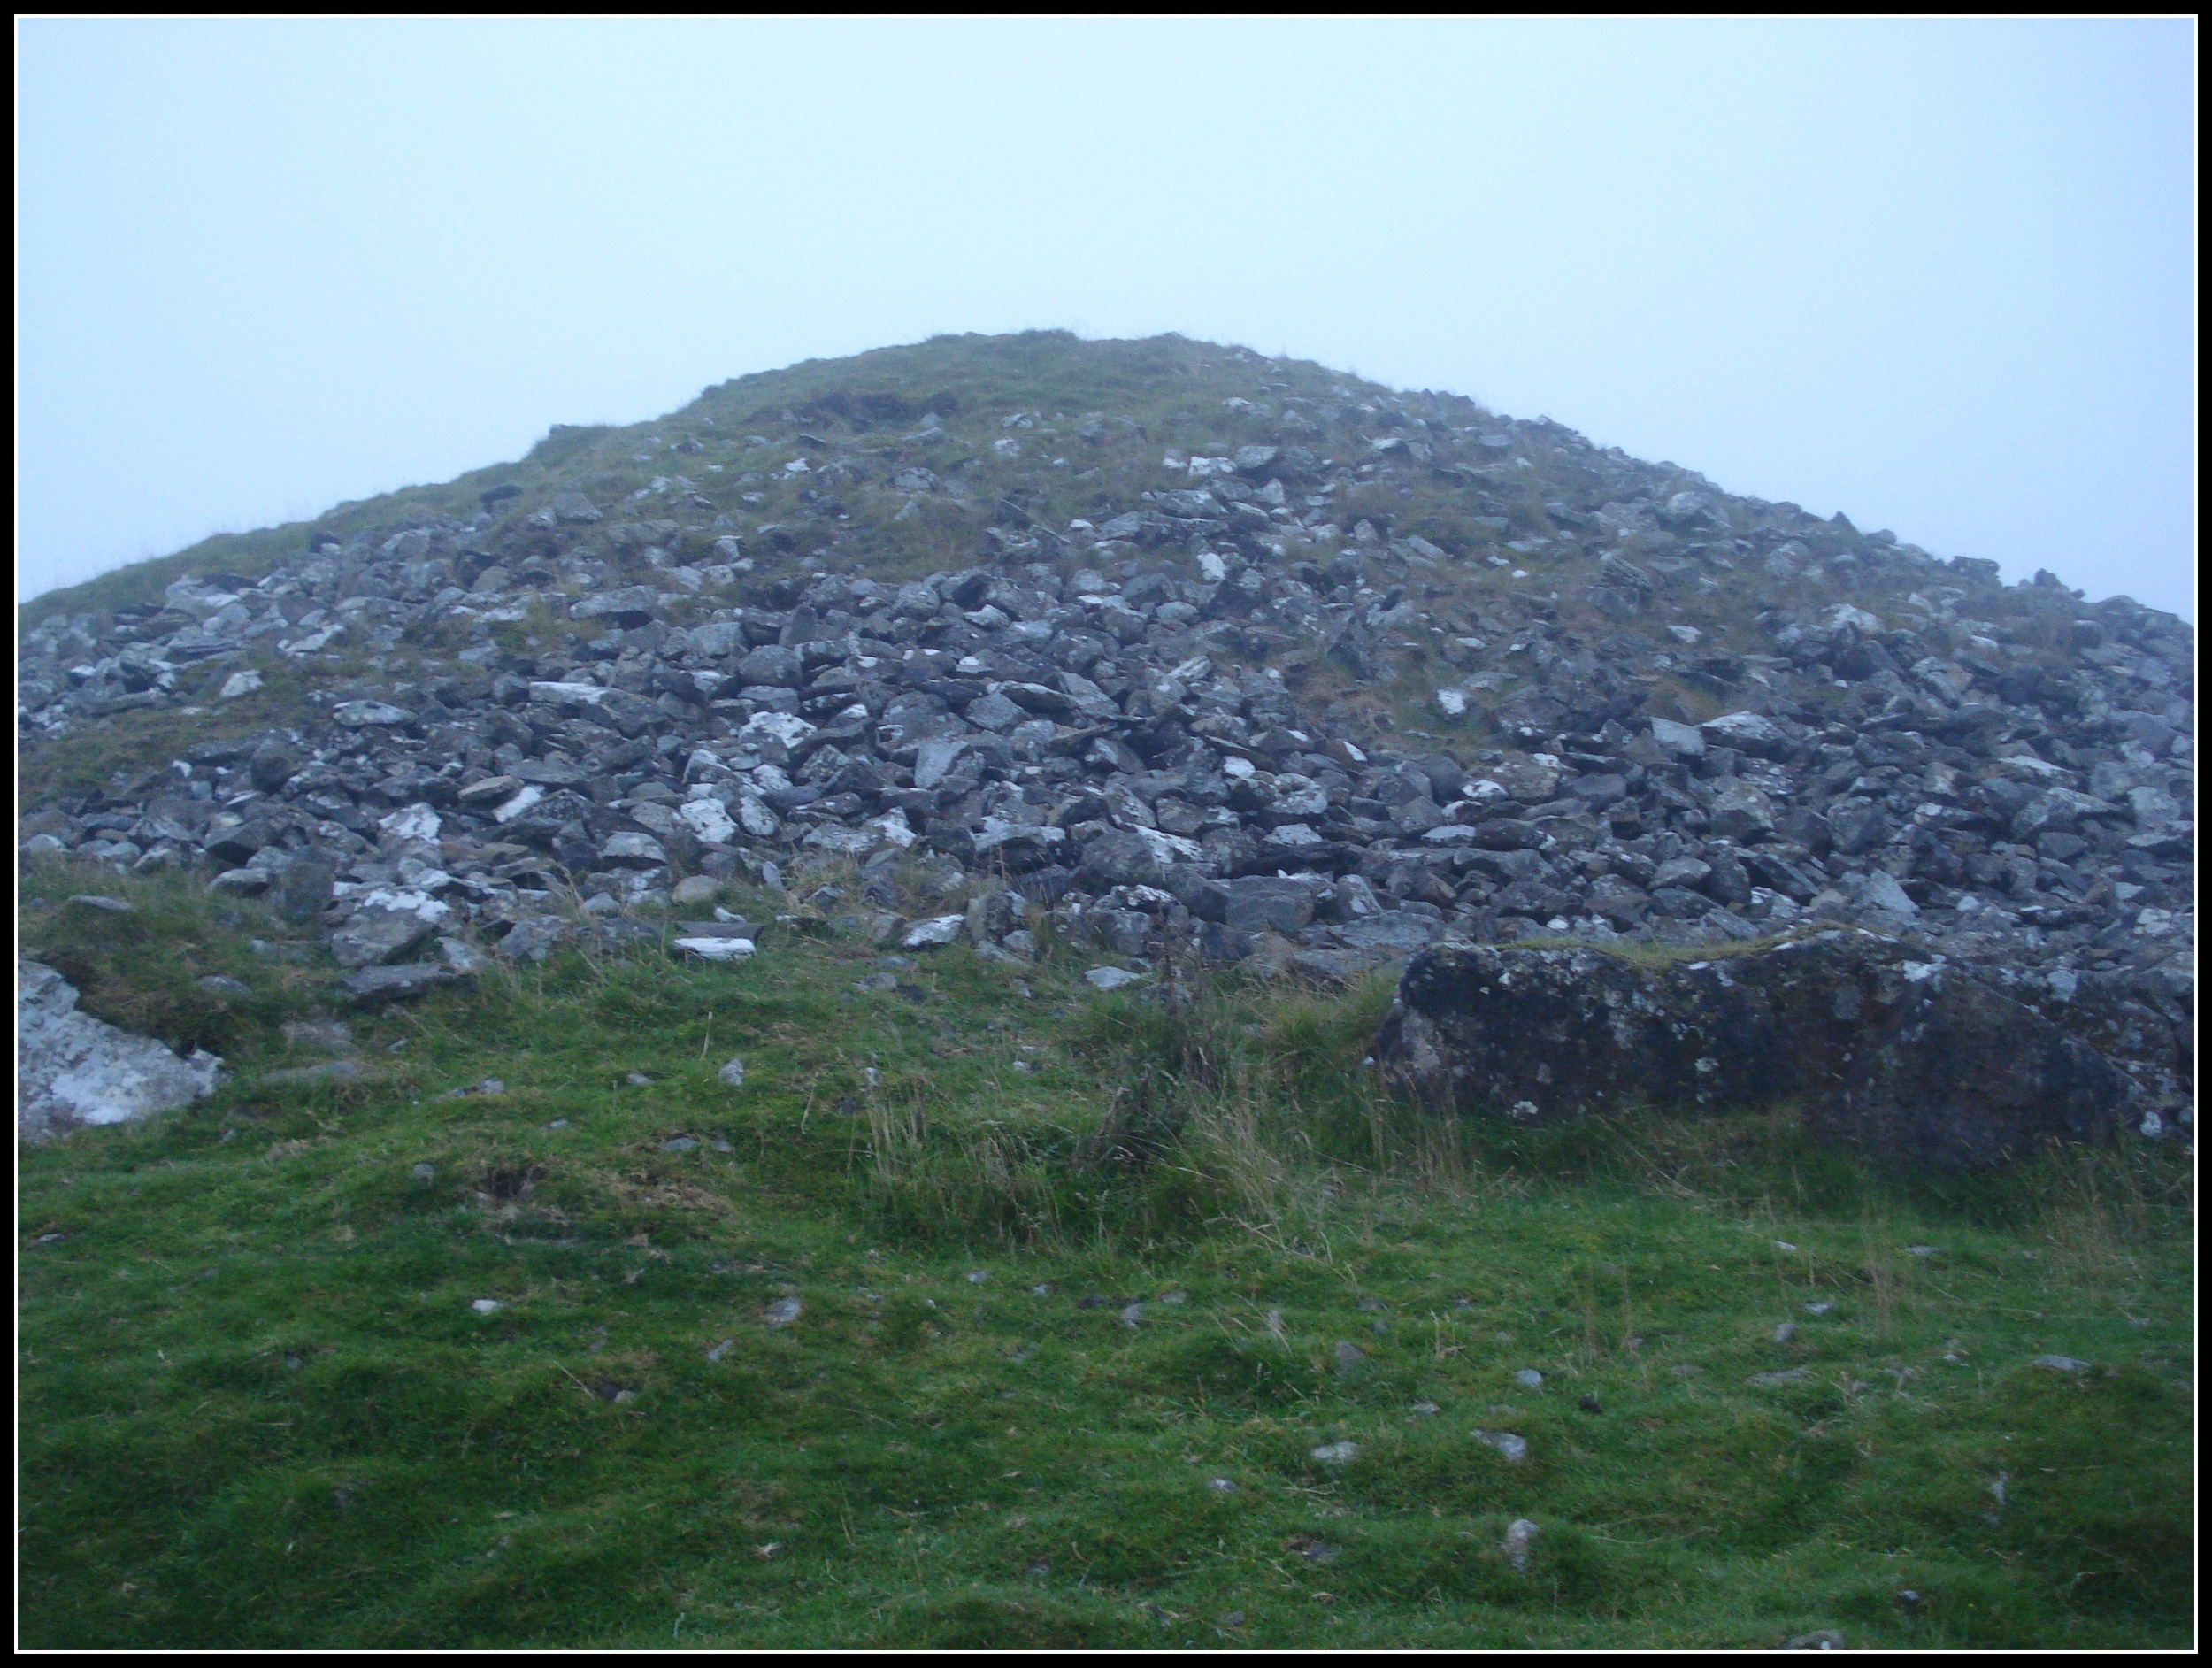 """The Cairns are megalithic structures originally built about 4000 bc as burial chambers.""   http://loughcrew.com/cairns/"